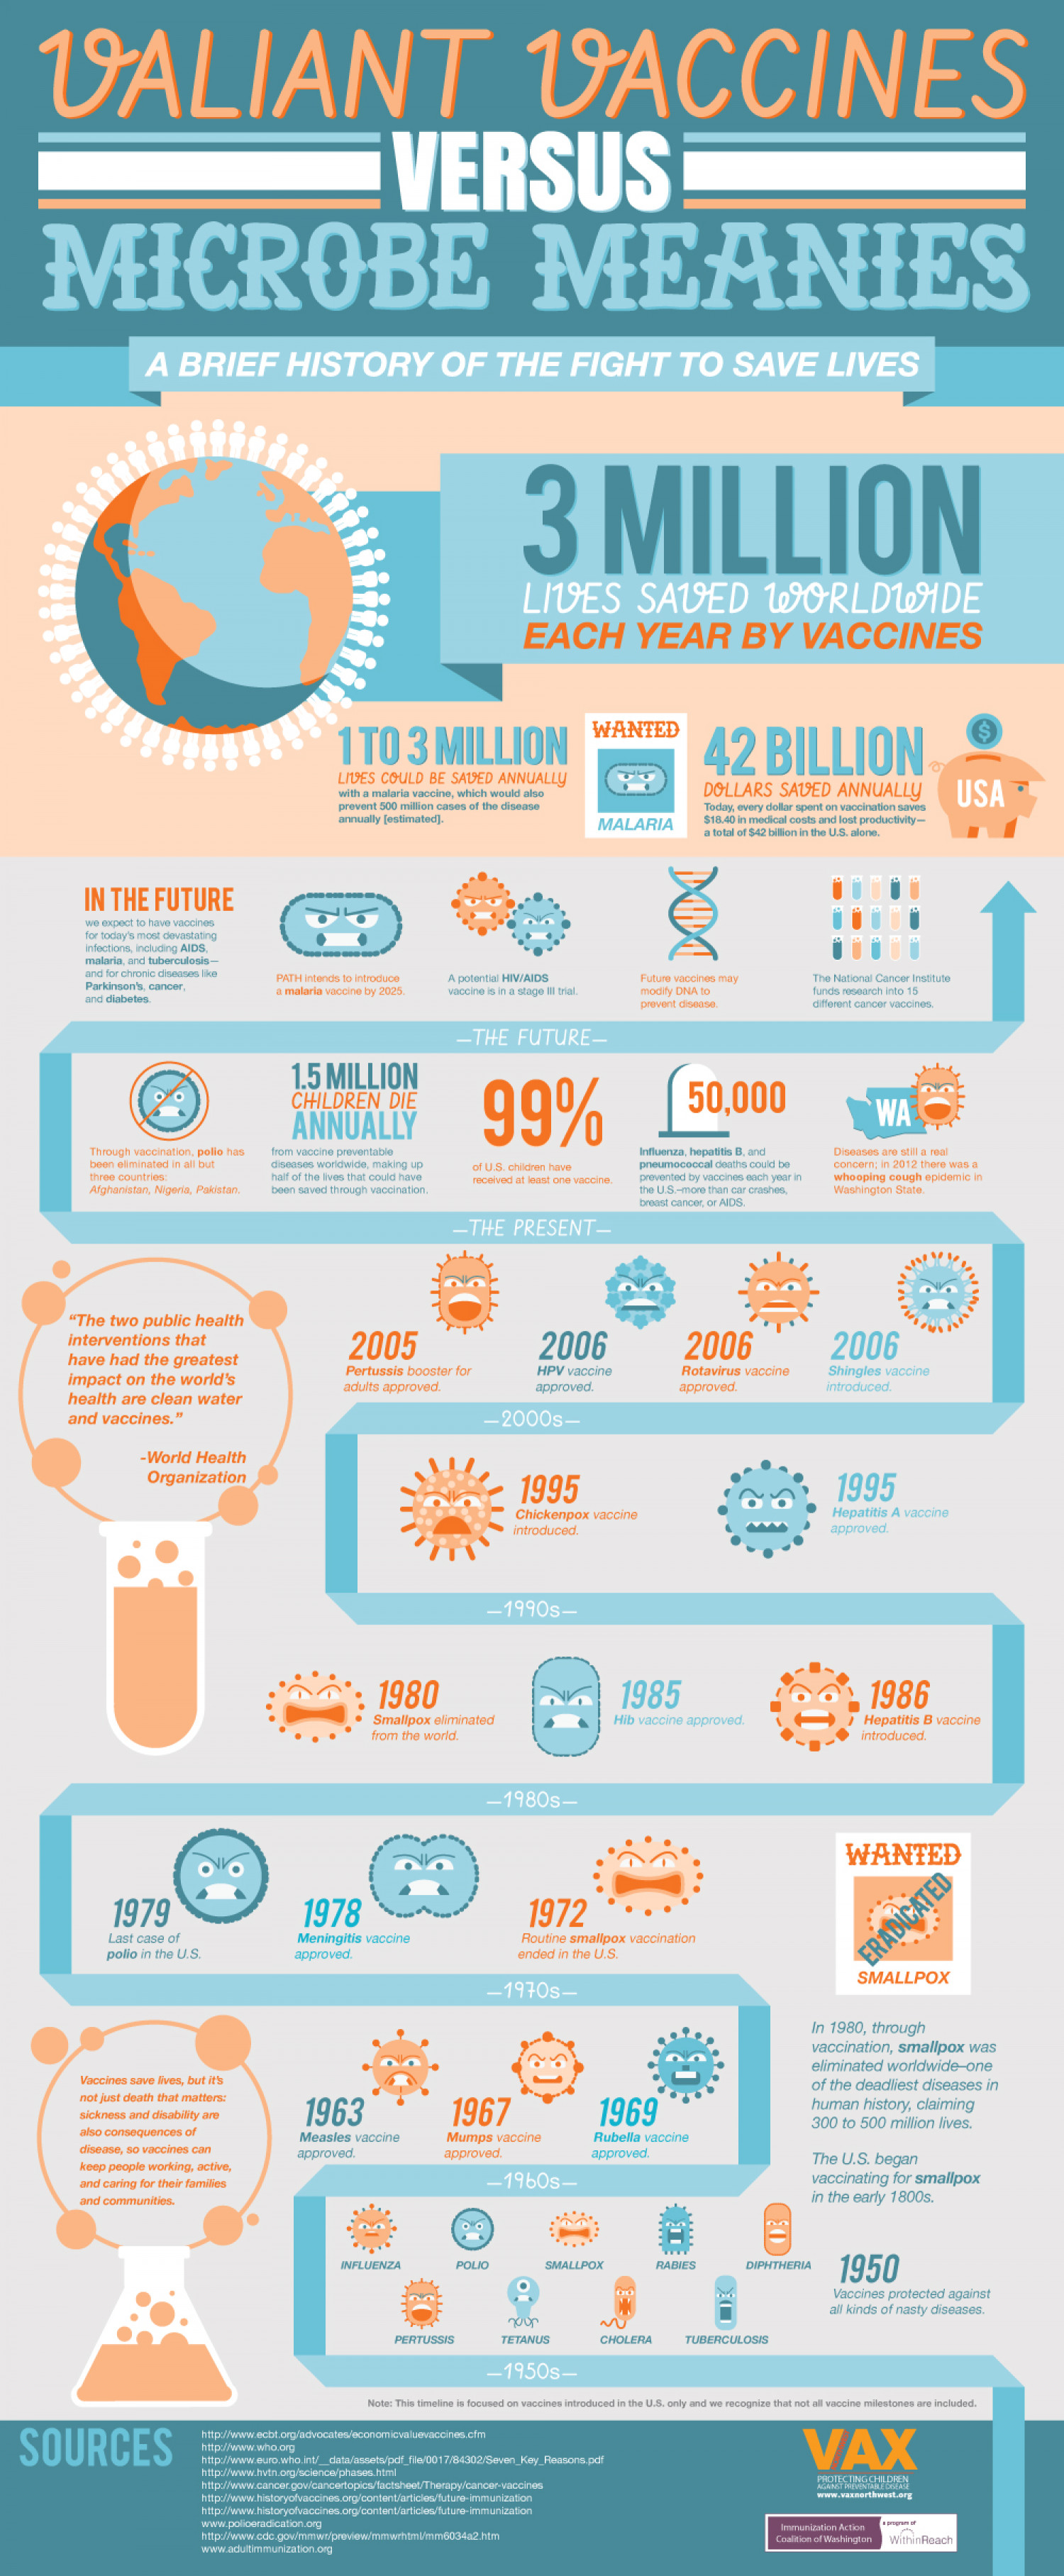 Valiant Vaccines vs Microbe Meanies: 50 Years of Vaccine Progress Infographic